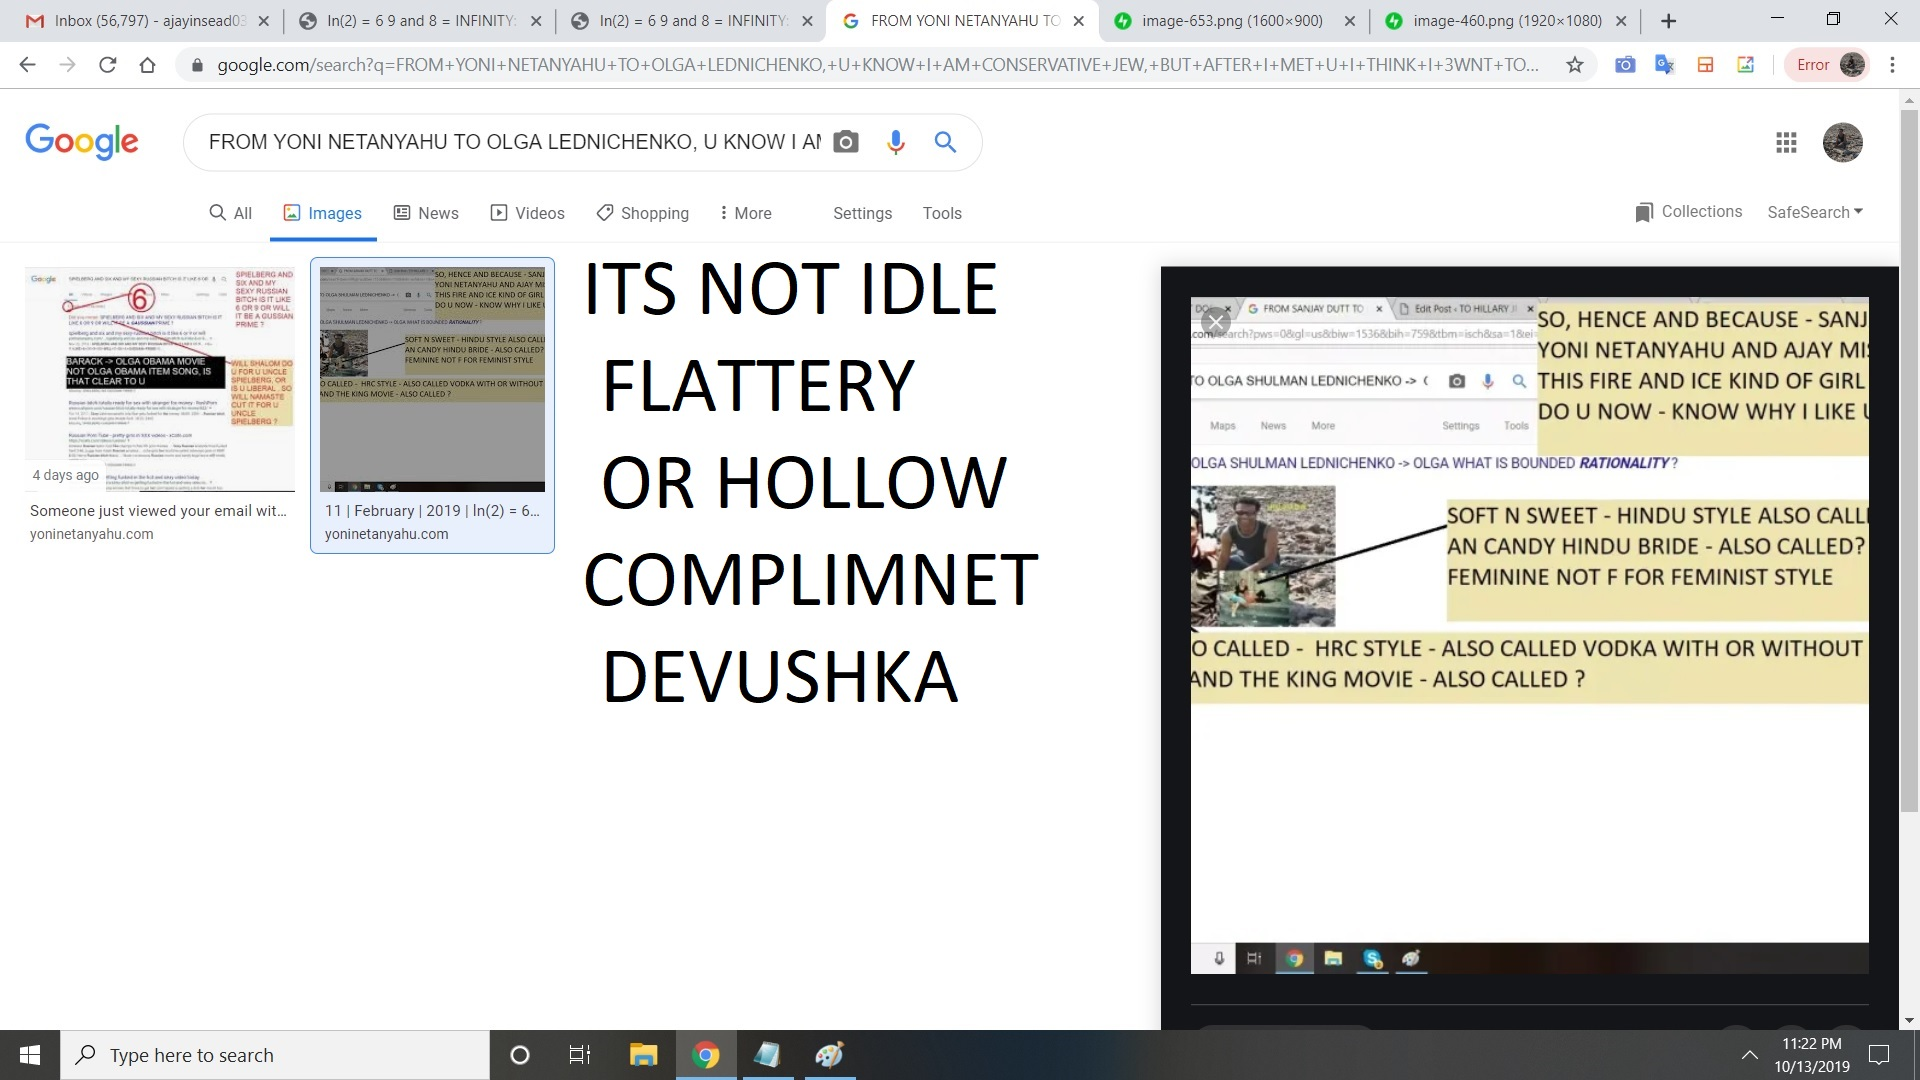 ITS NOT IDEL FLATTERY OR HOLLOW COMPLIMNET DEVUSHKA